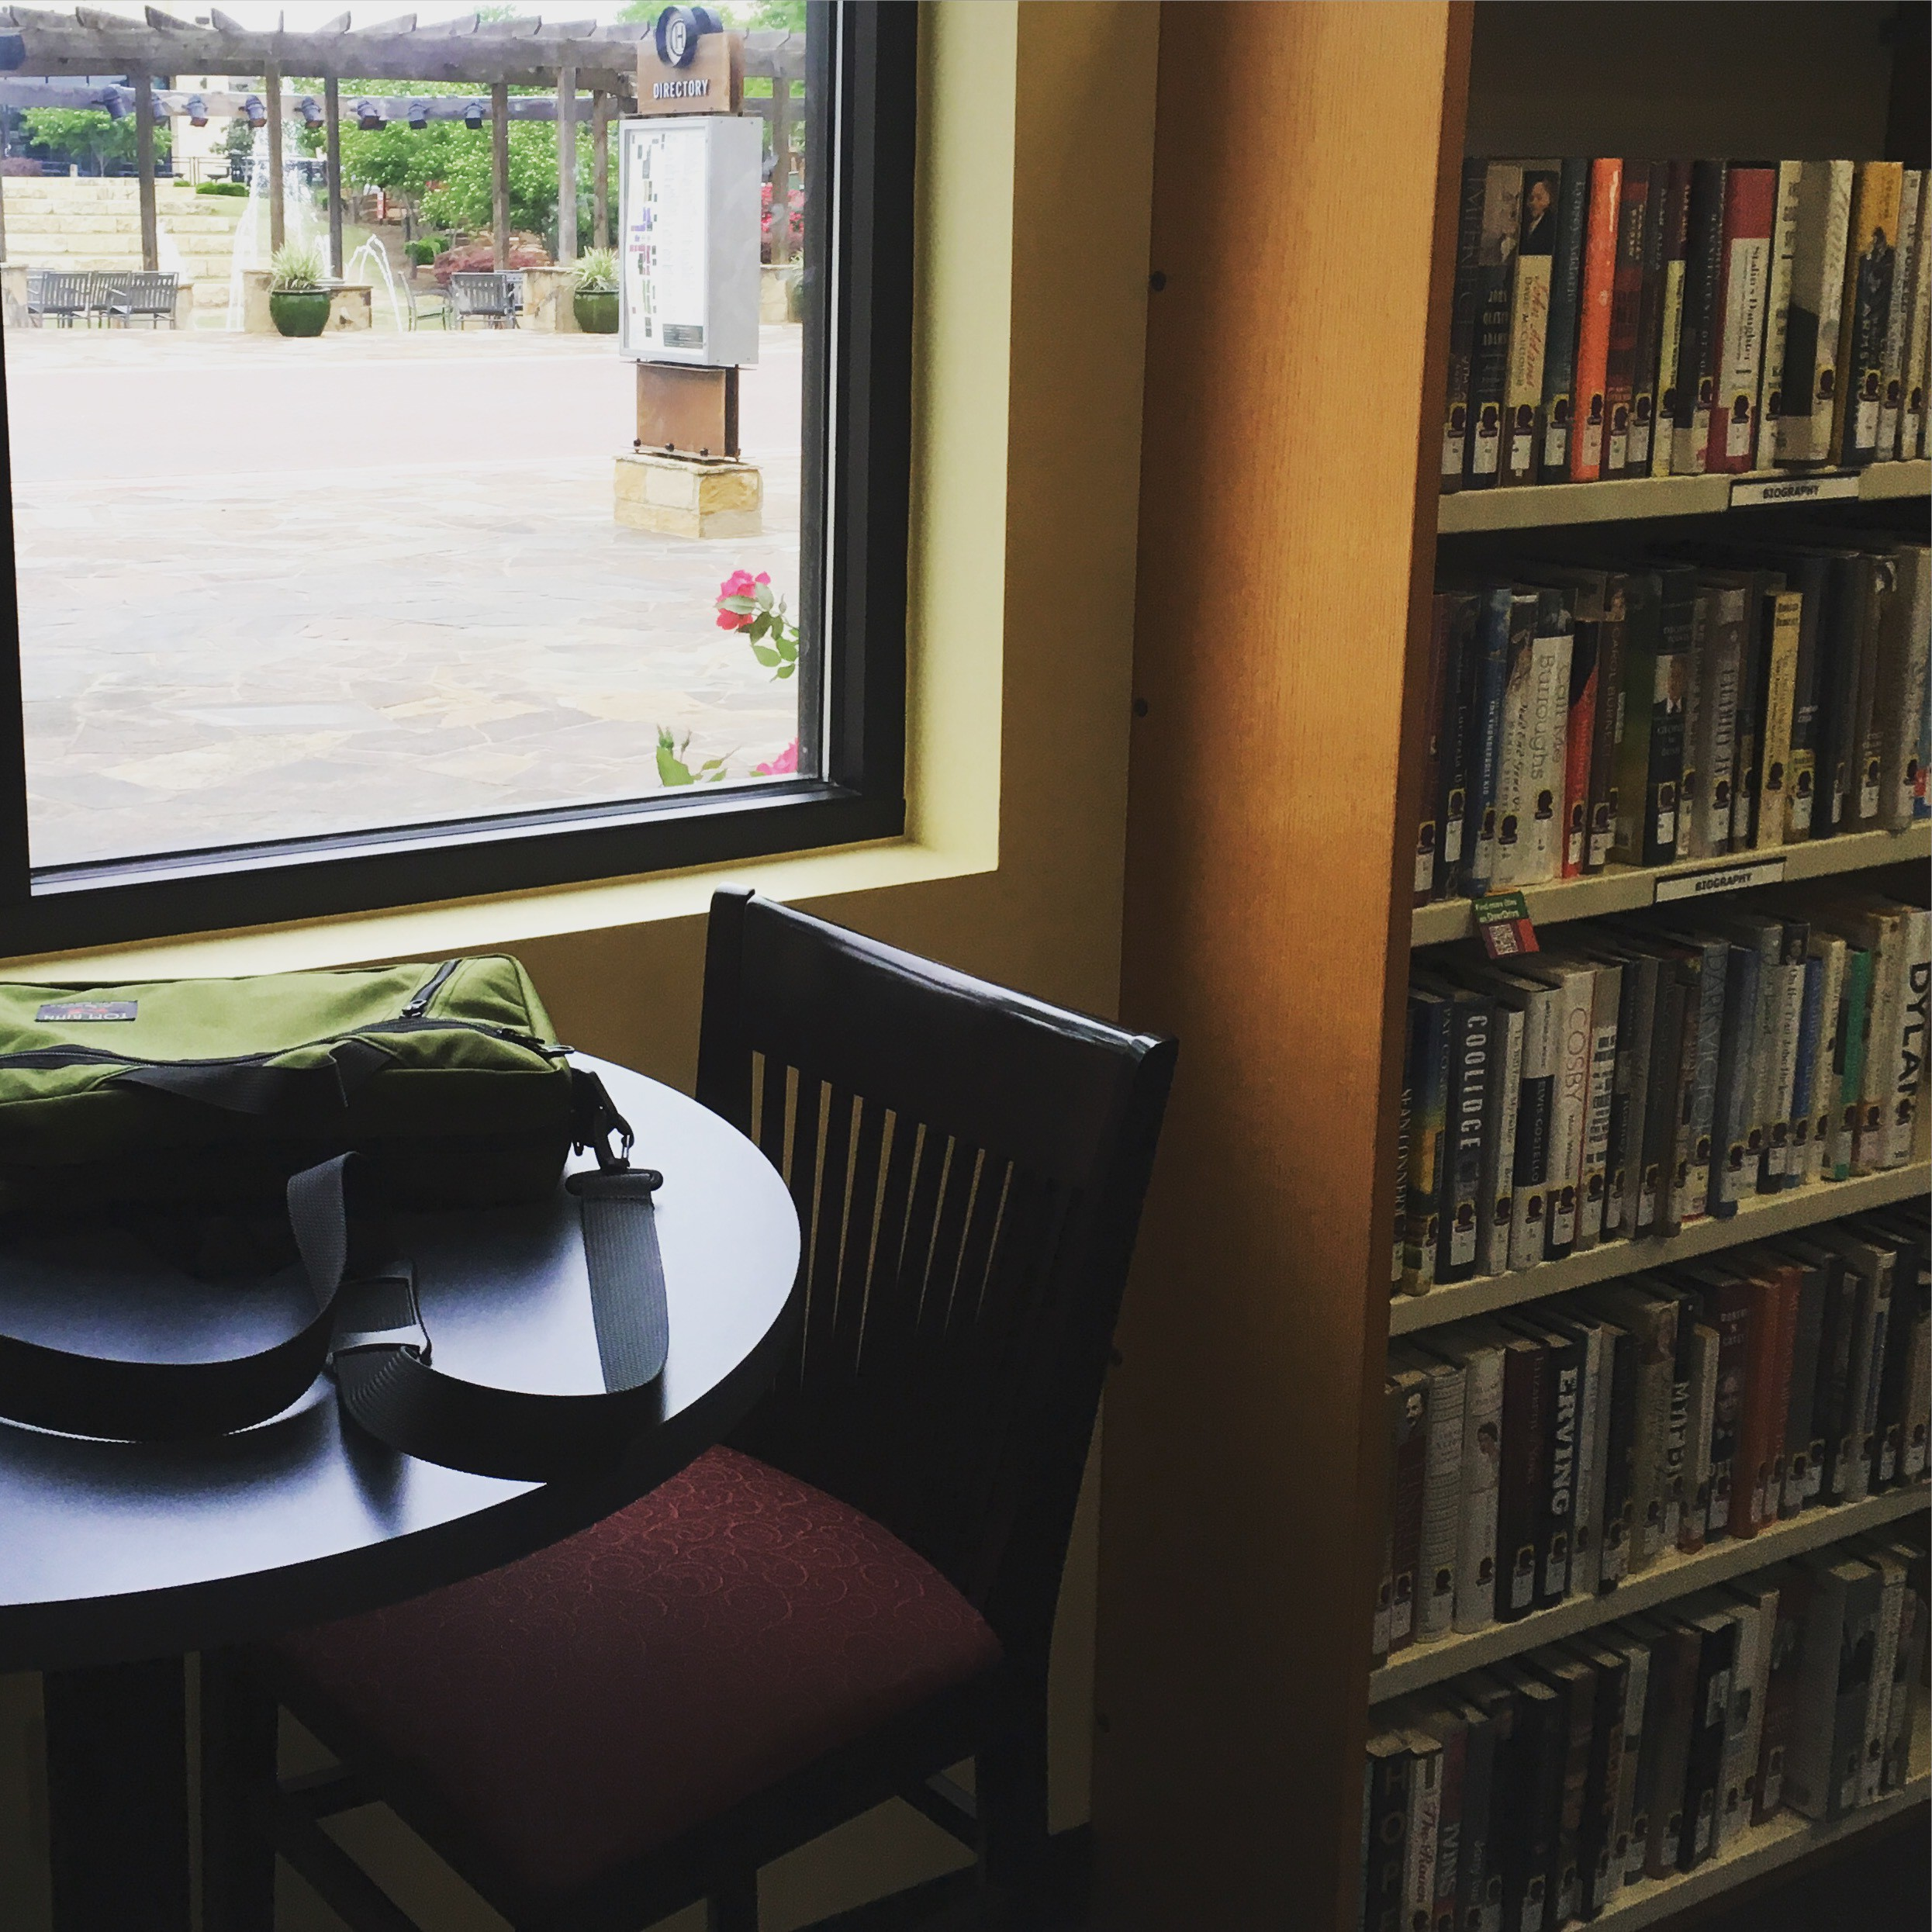 Bee Cave Public Library